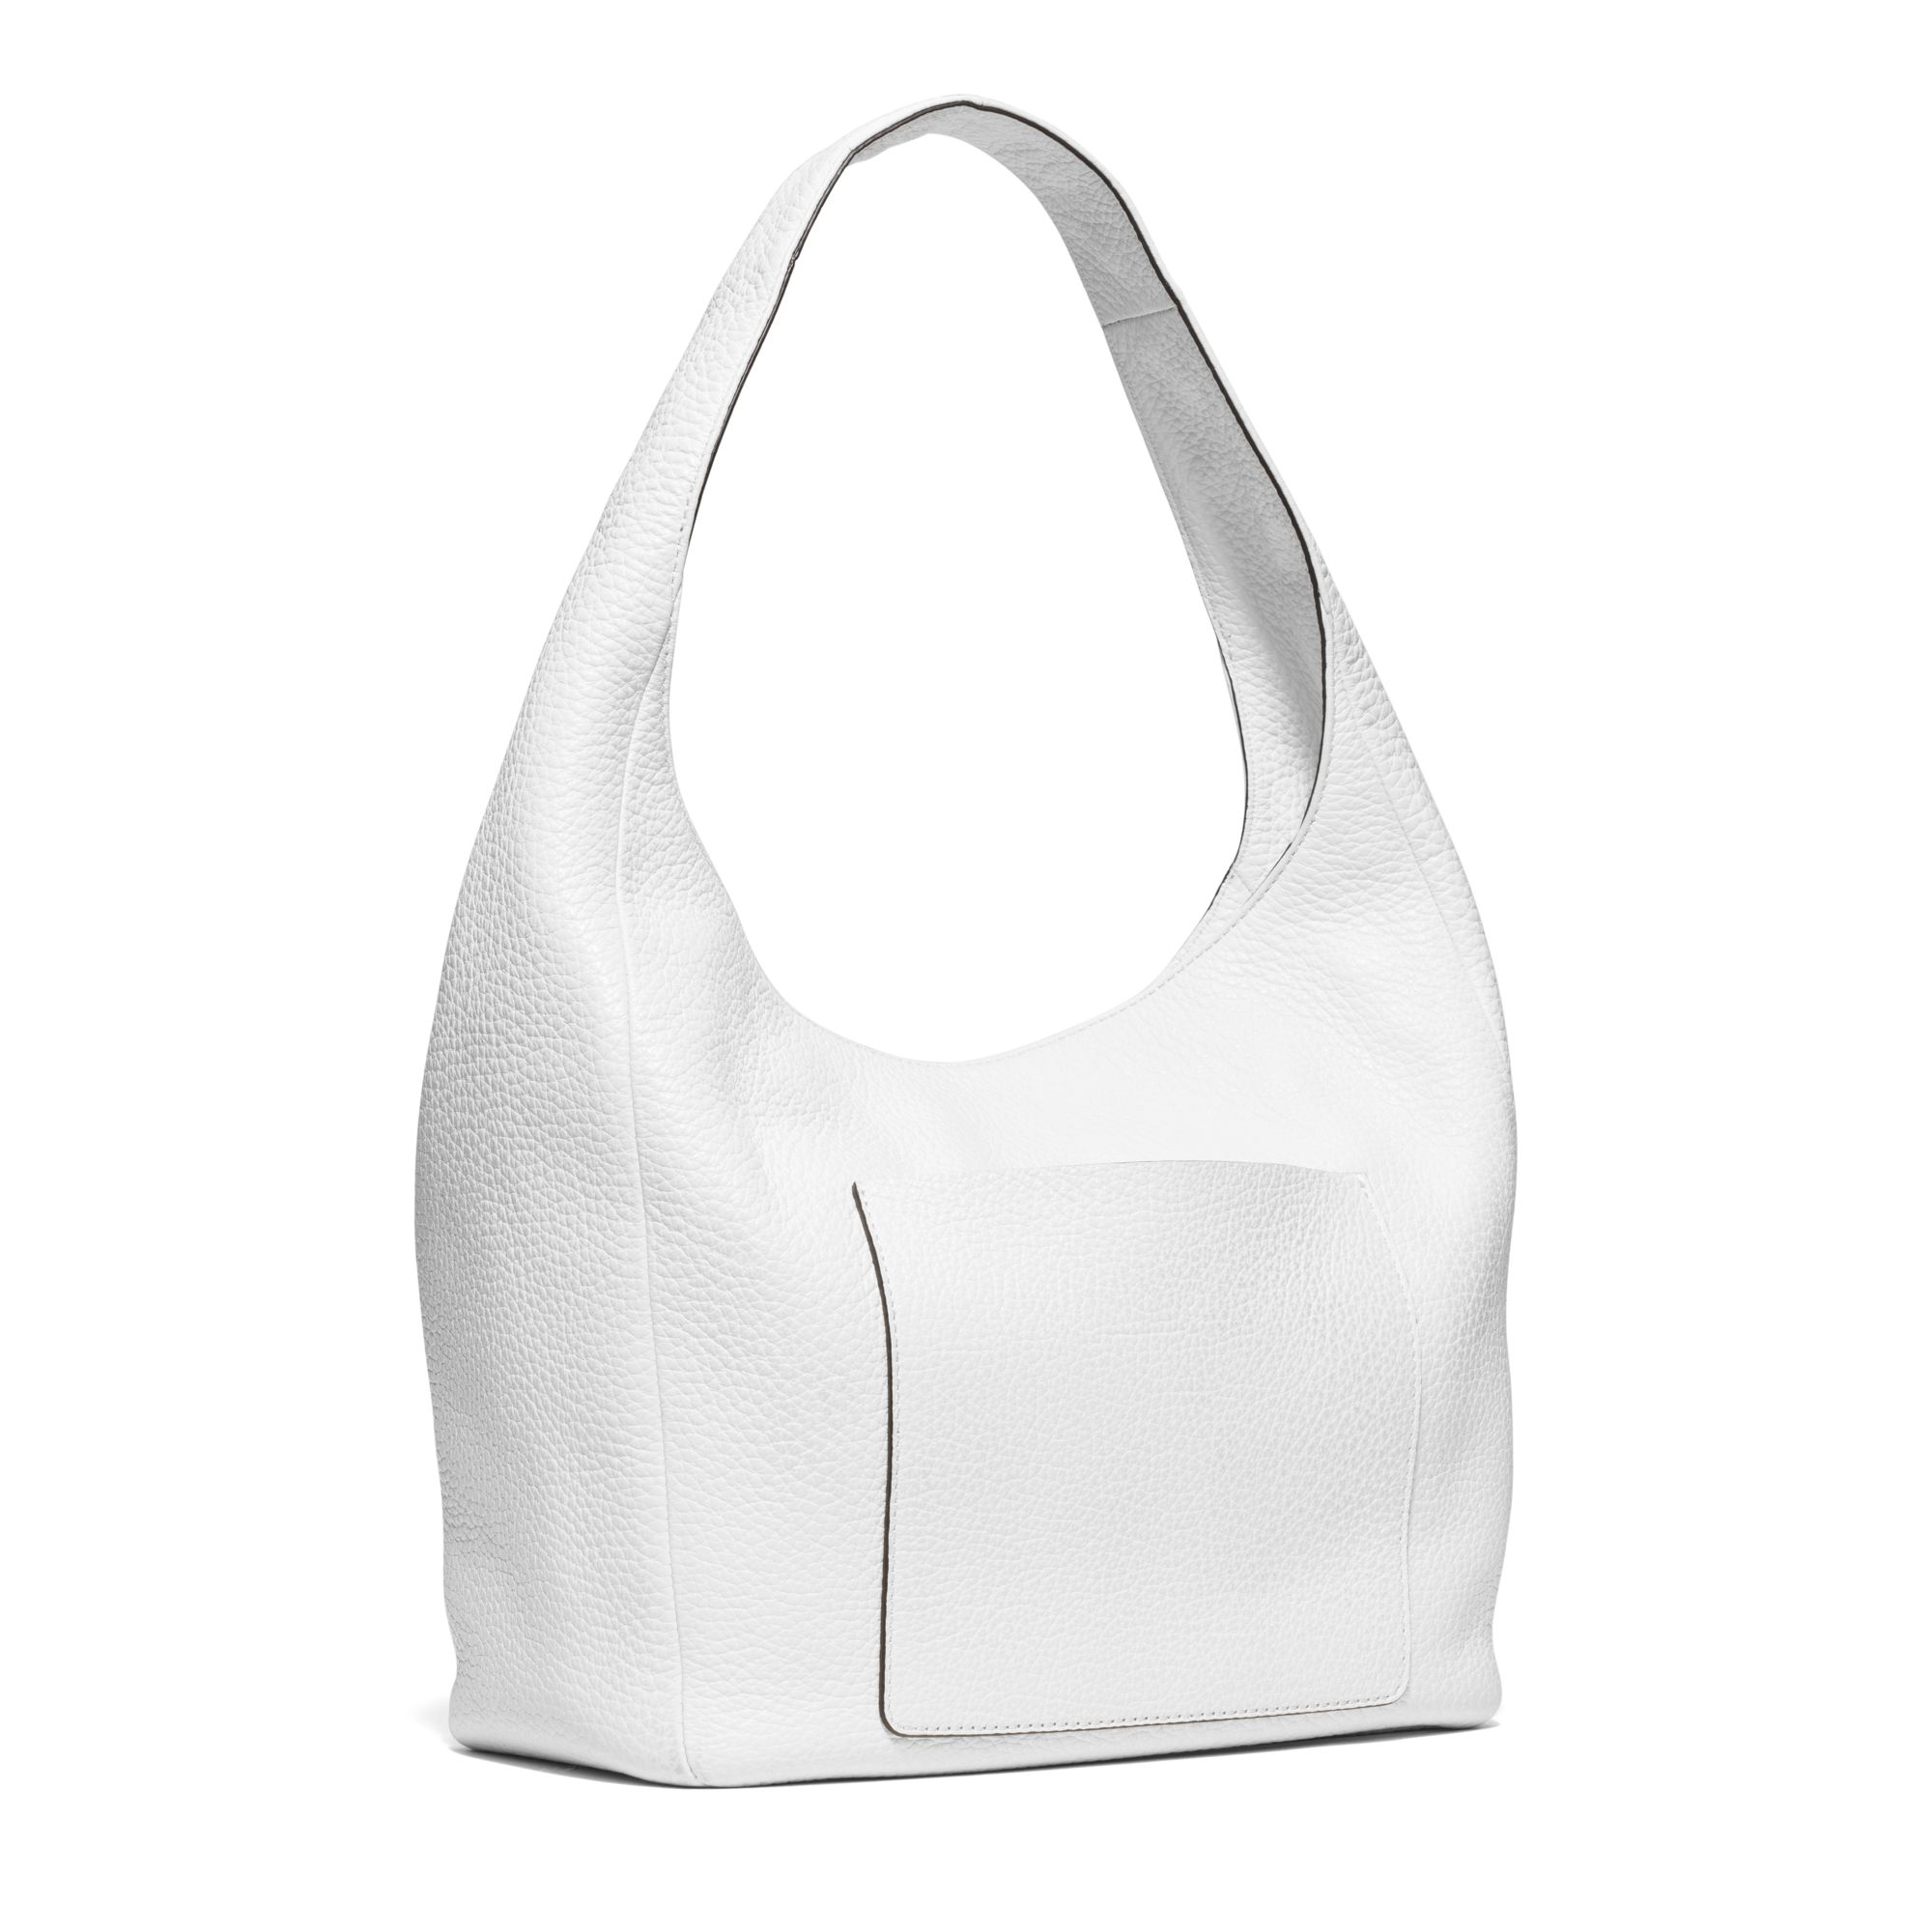 Michael kors Lena Large Leather Shoulder Bag in White | Lyst